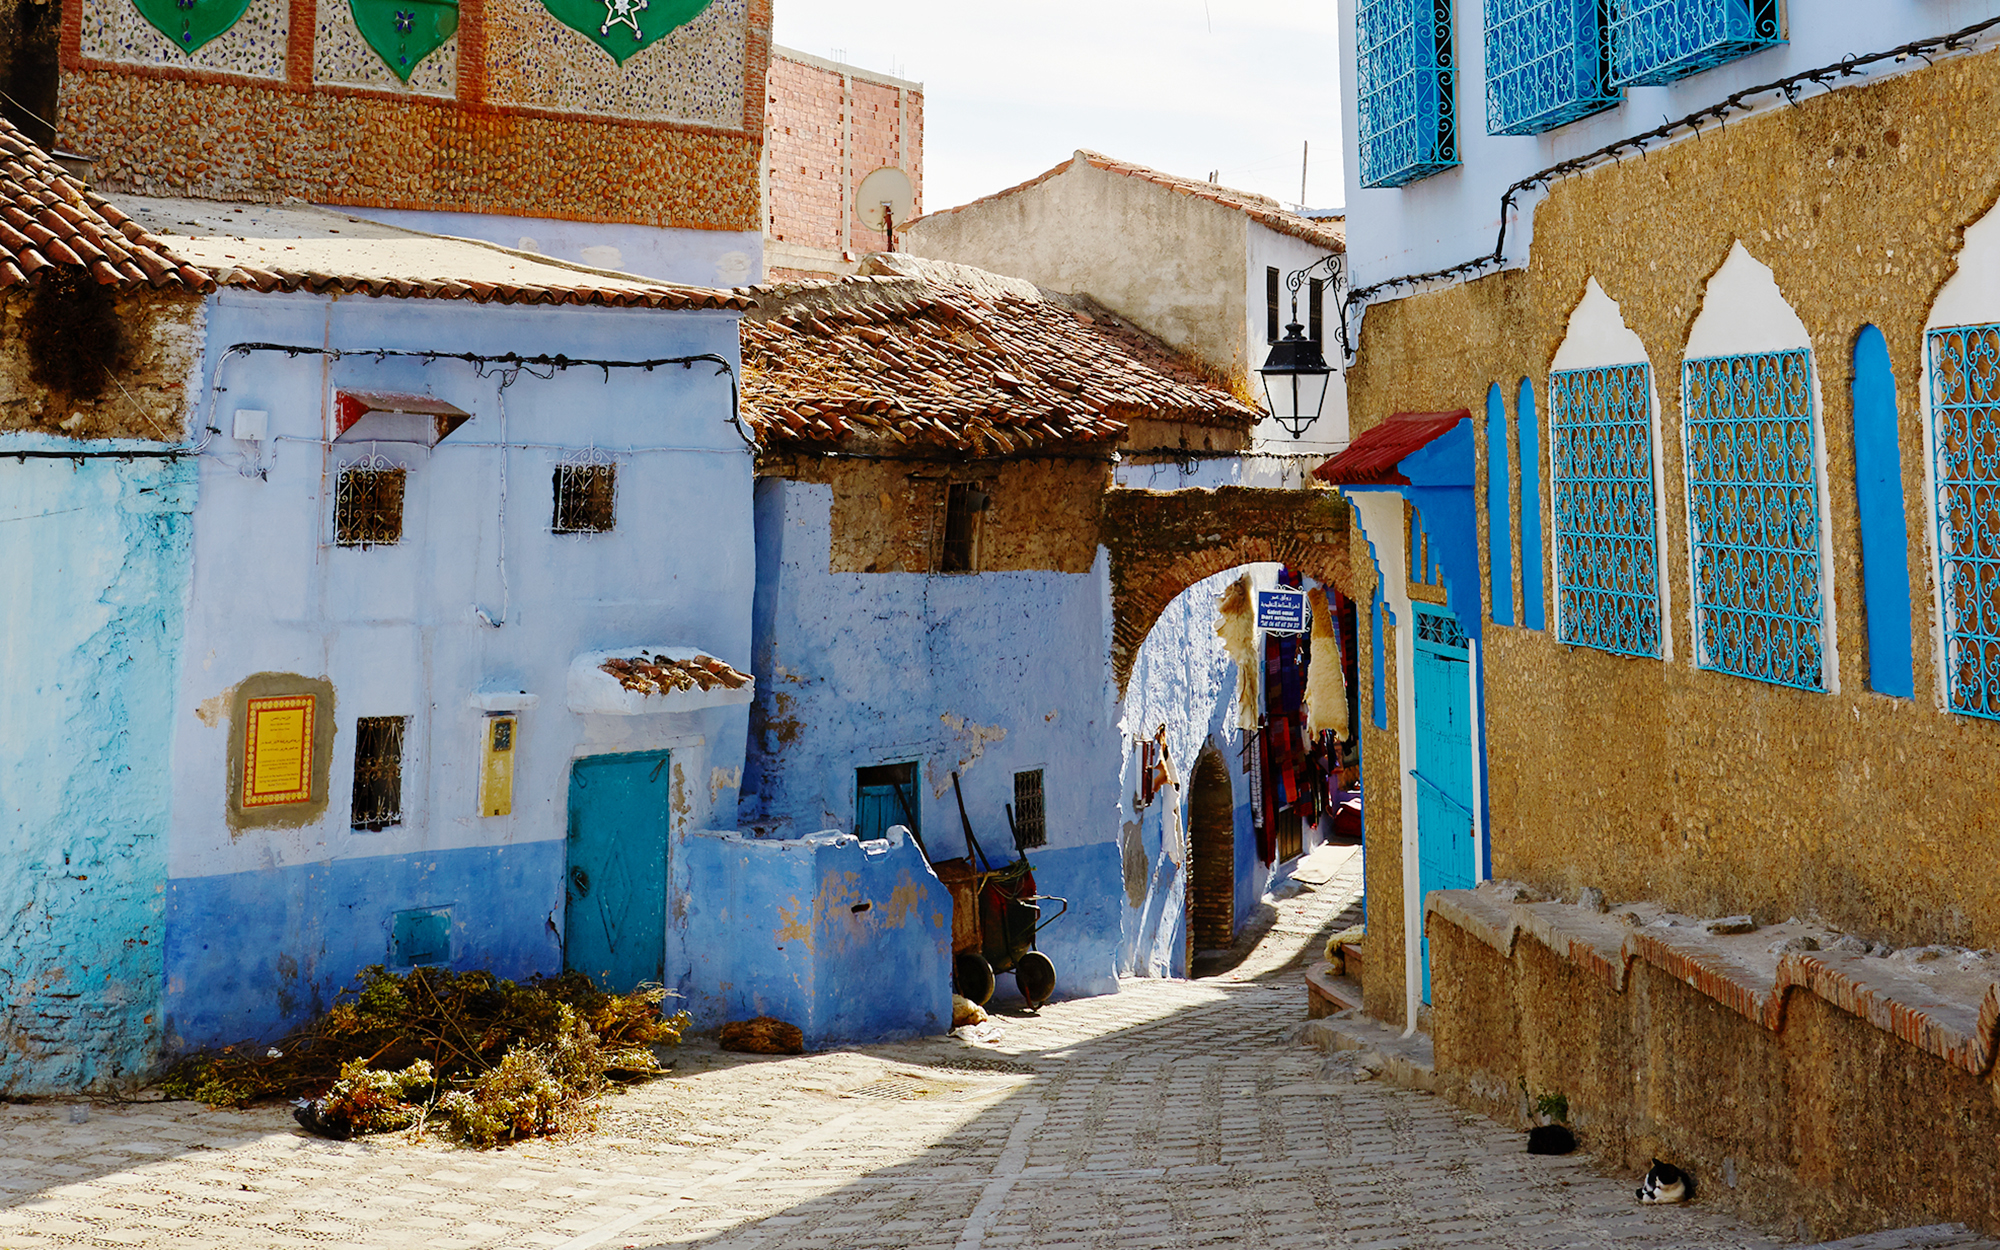 Streetview in Chefchaouen Morocco